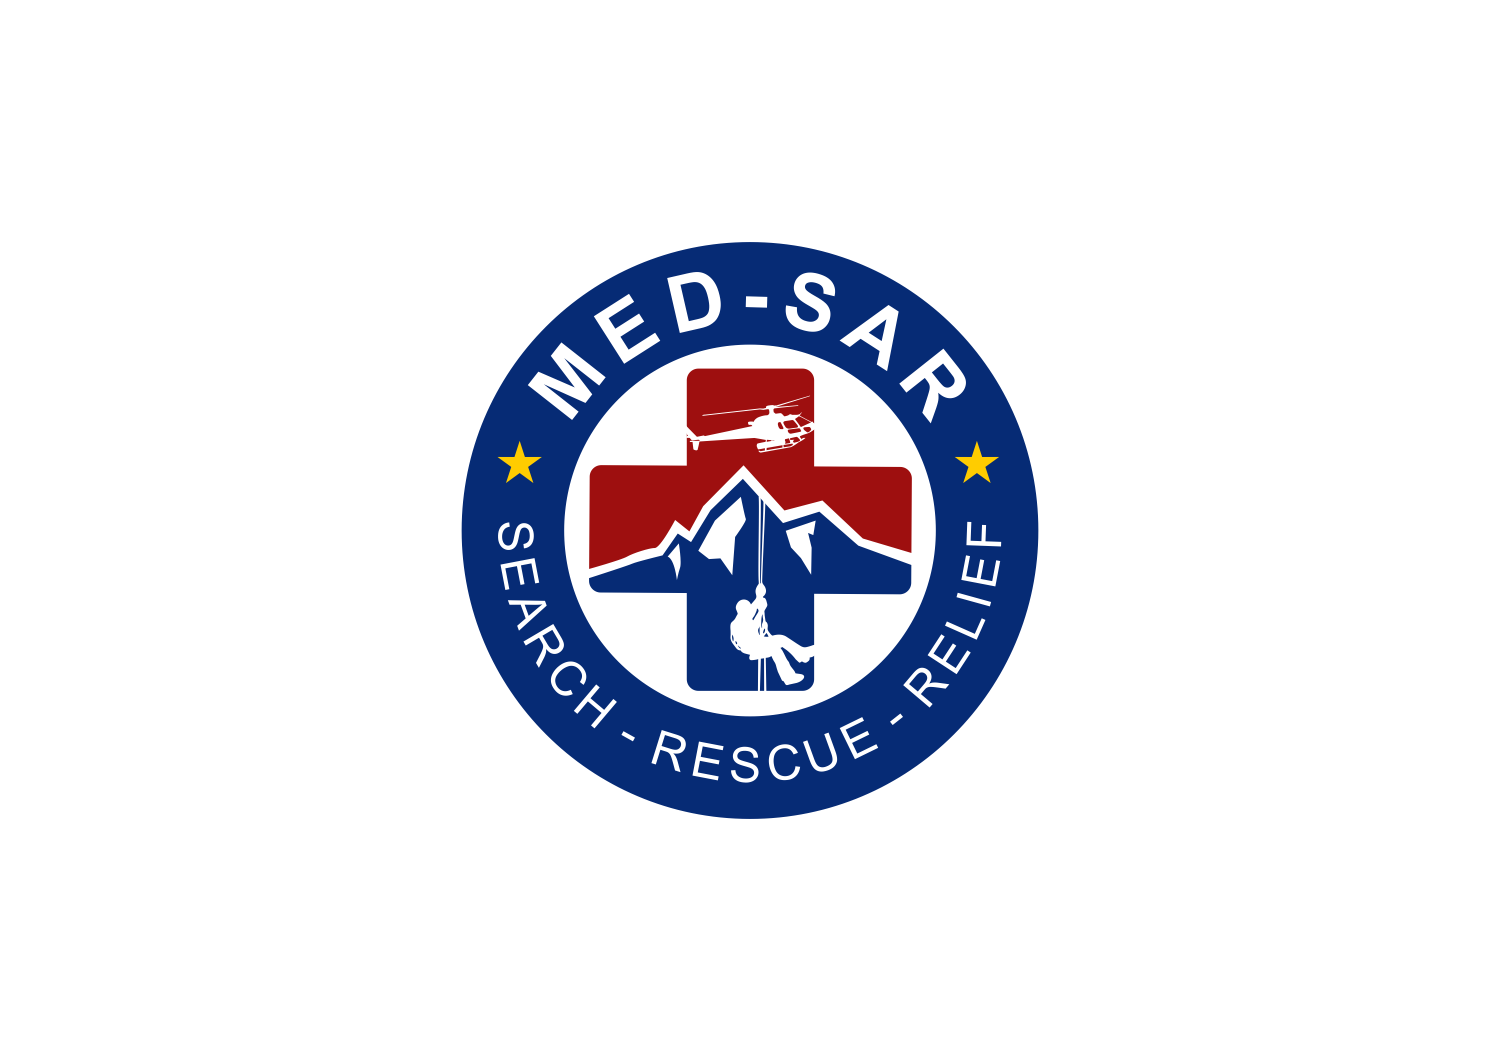 Logo Design for Search and Rescue Company called MED.